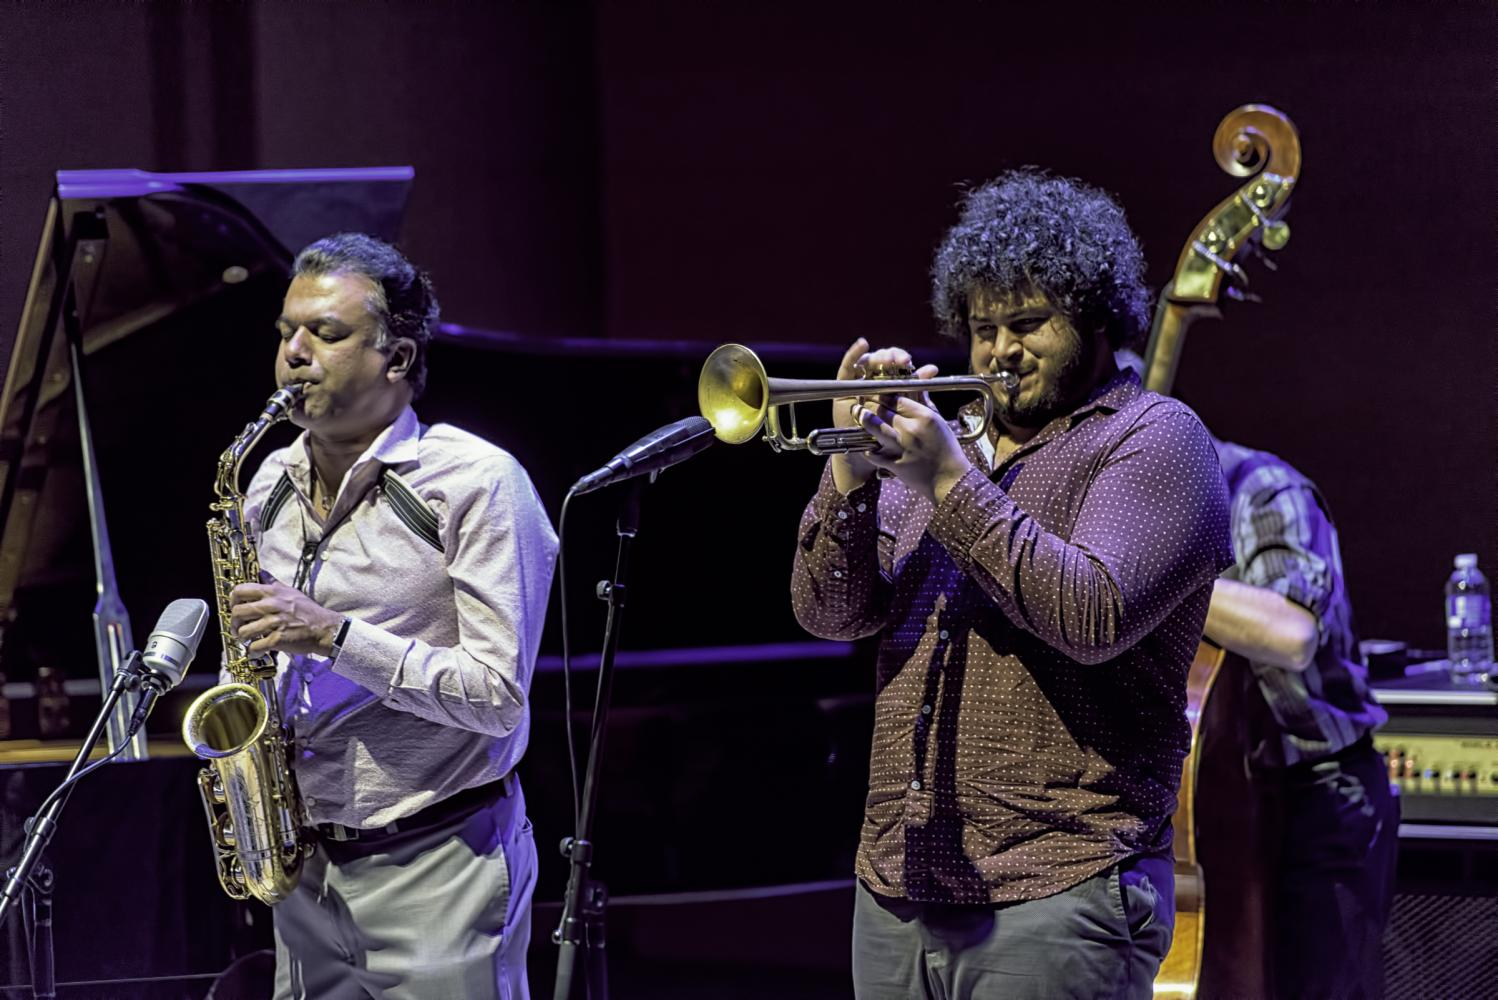 Rudresh Mahanthappa and Adam O'Farrill with Bird Calls at the Musical Instrument Museum (MIM) in Phoenix